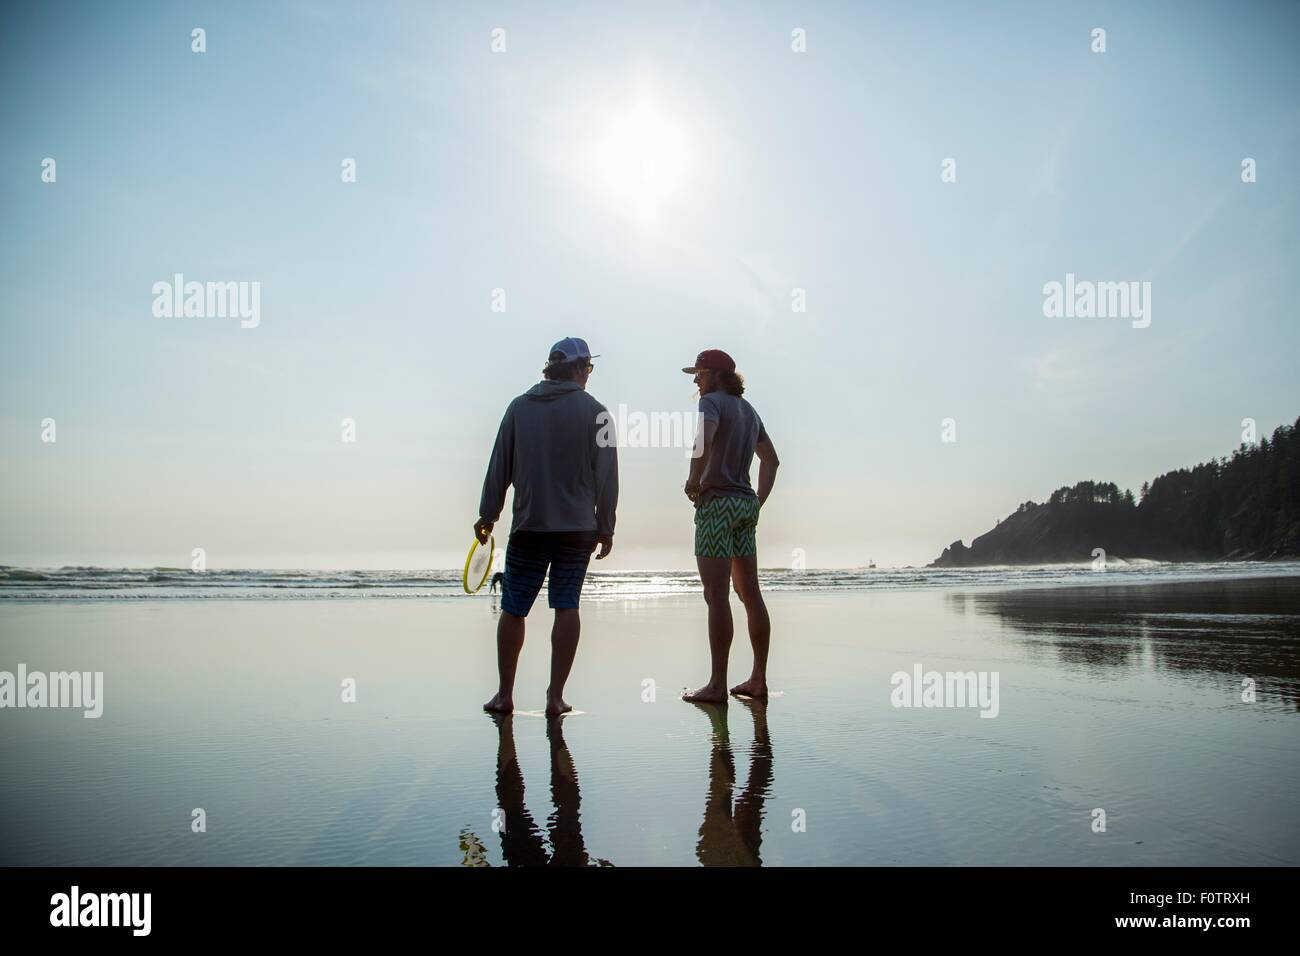 Rear silhouetted view of two young men chatting on Short Sands Beach, Oregon, USA Stock Photo